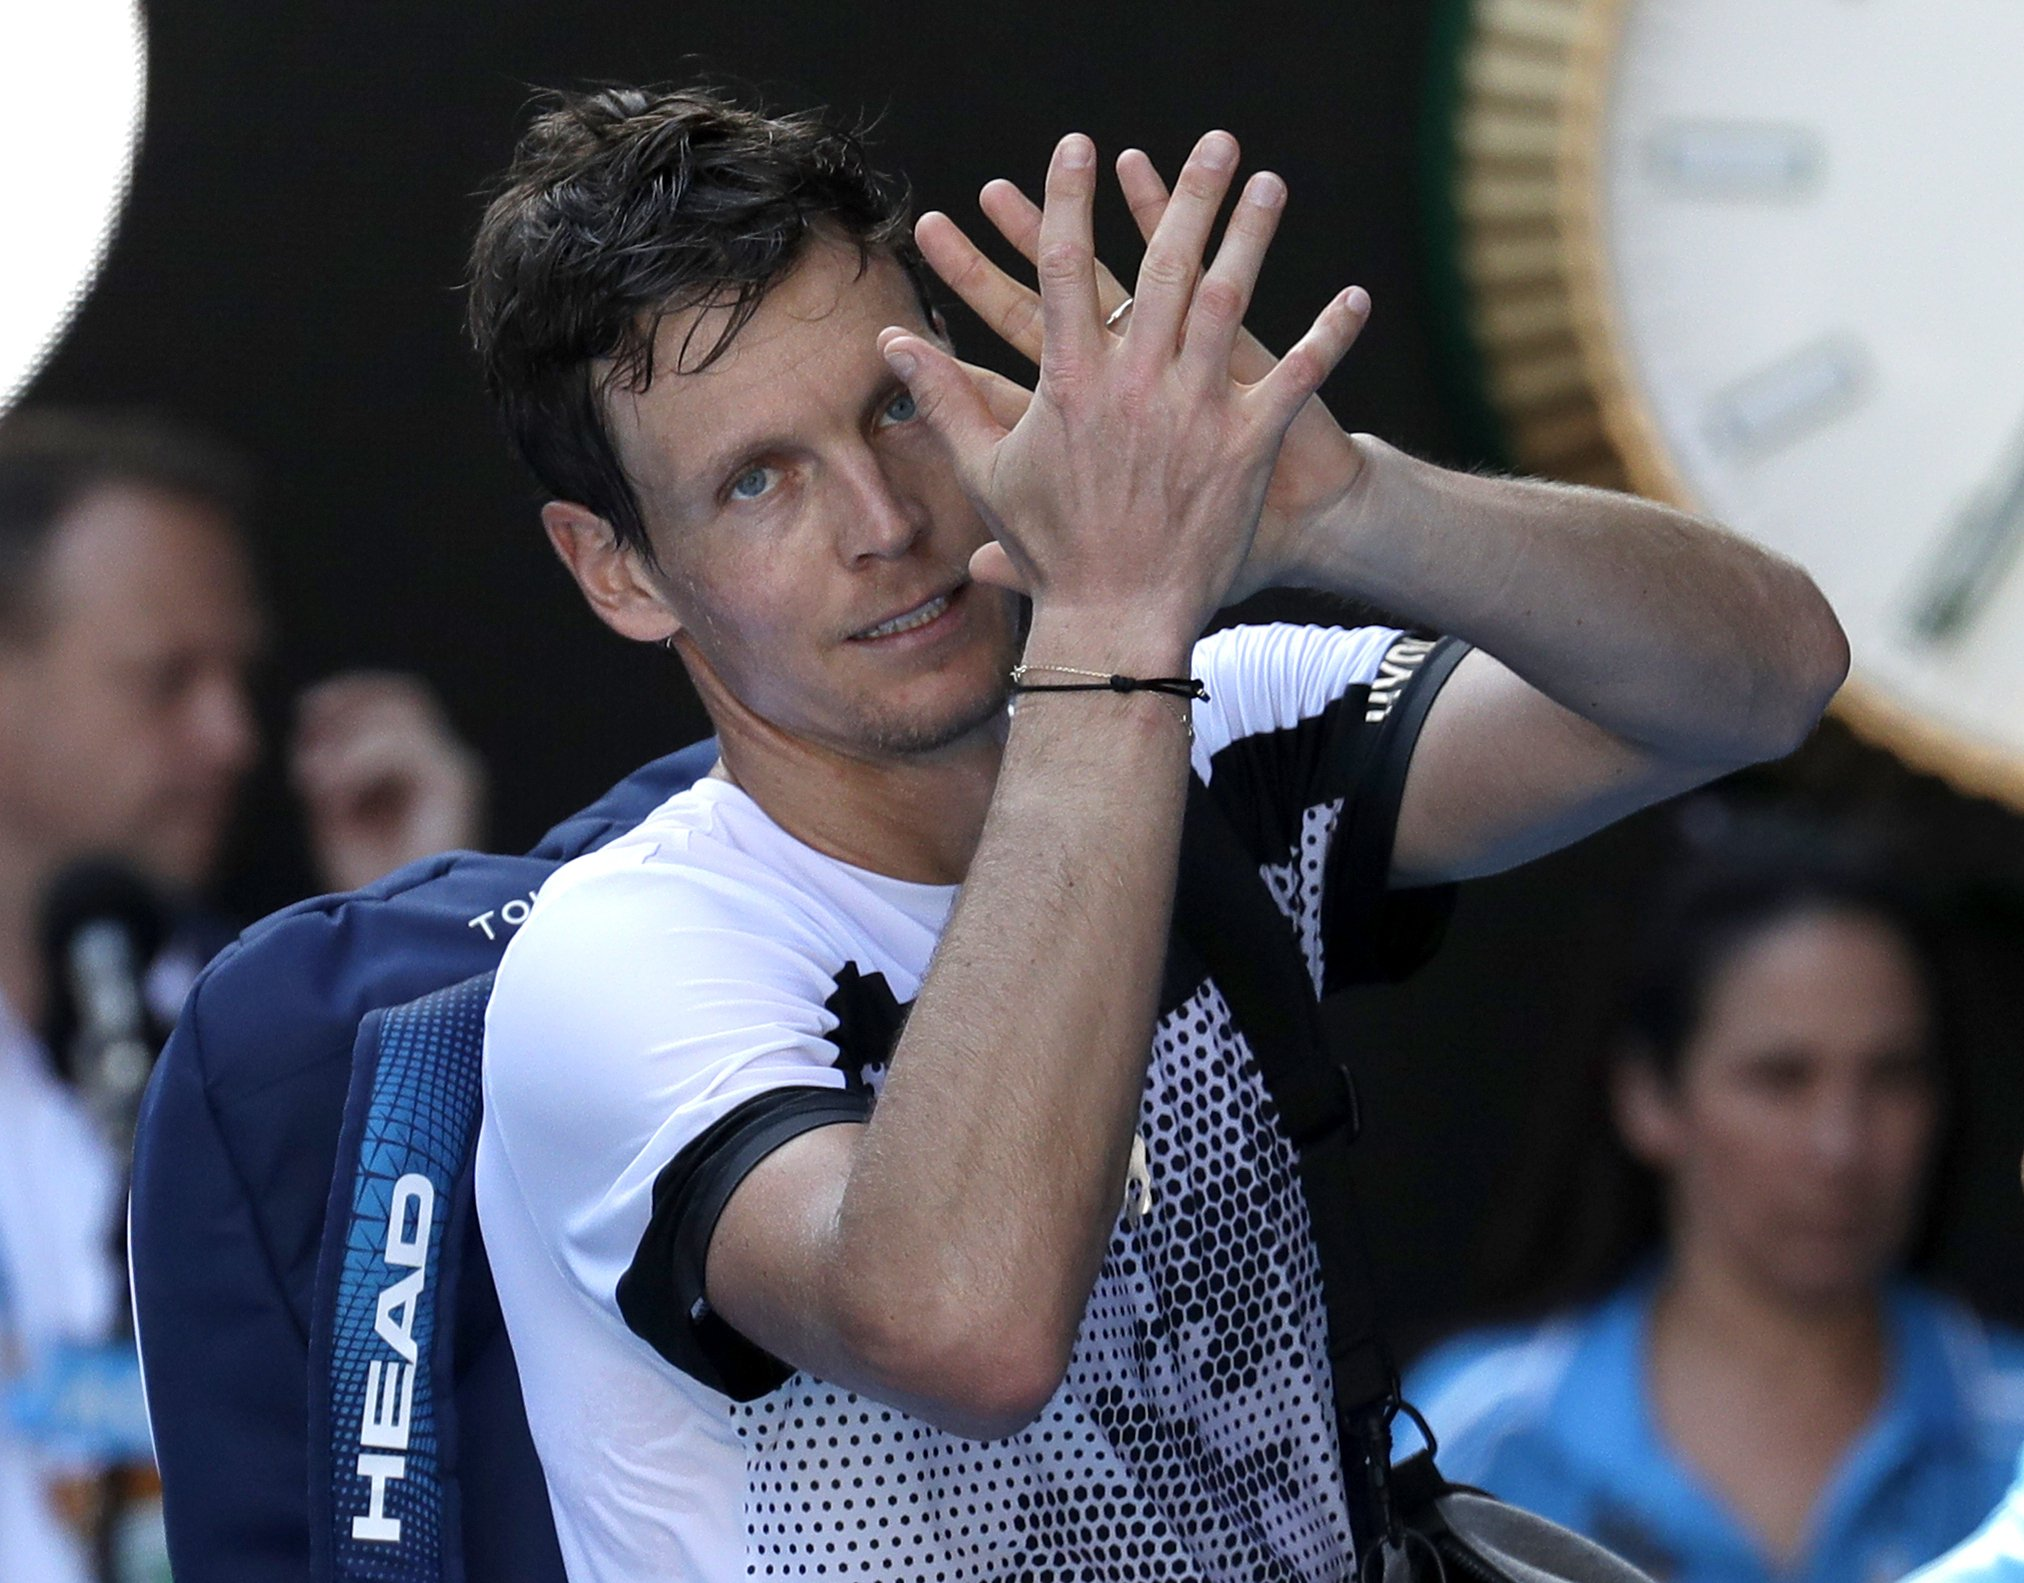 Berdych saves 2 match points on way to Montpellier semis